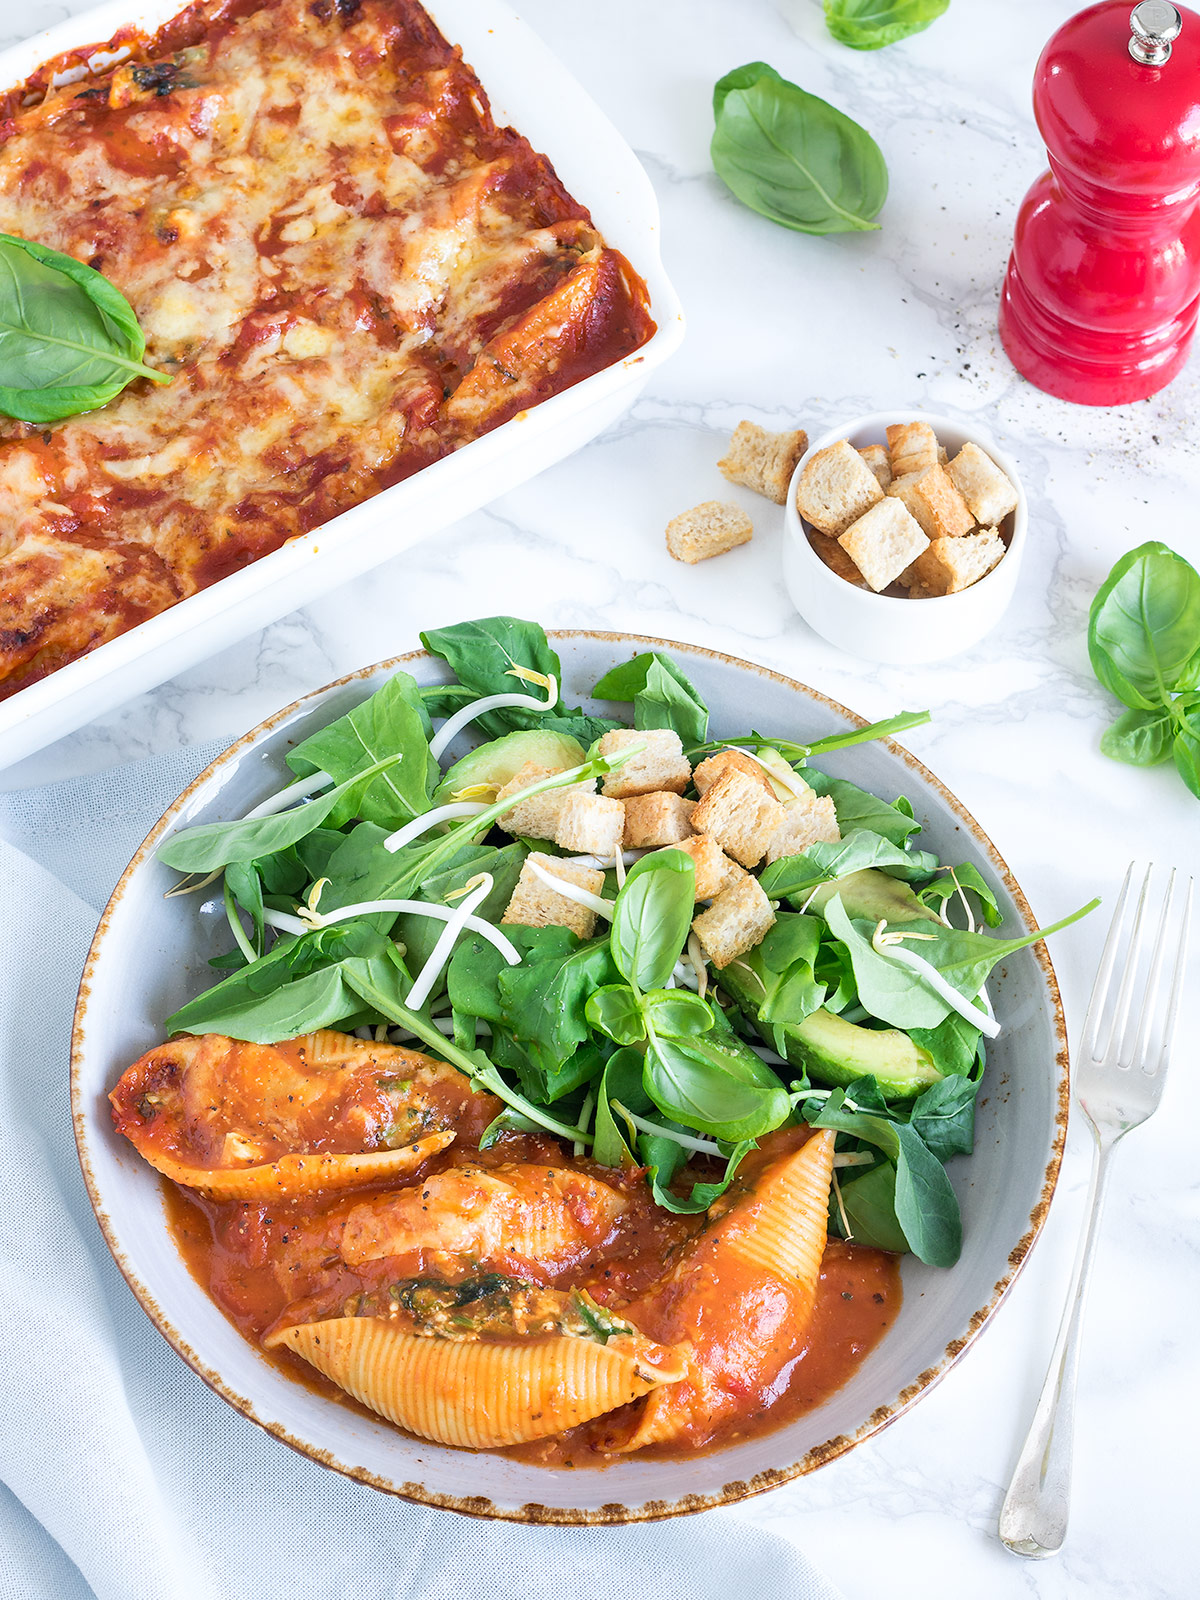 You won't notice the lack of meat with these delicious vegetarian stuffed pasta shells. Fecotta makes a yummy alternative to ricotta, if you can find it in your local supermarket.